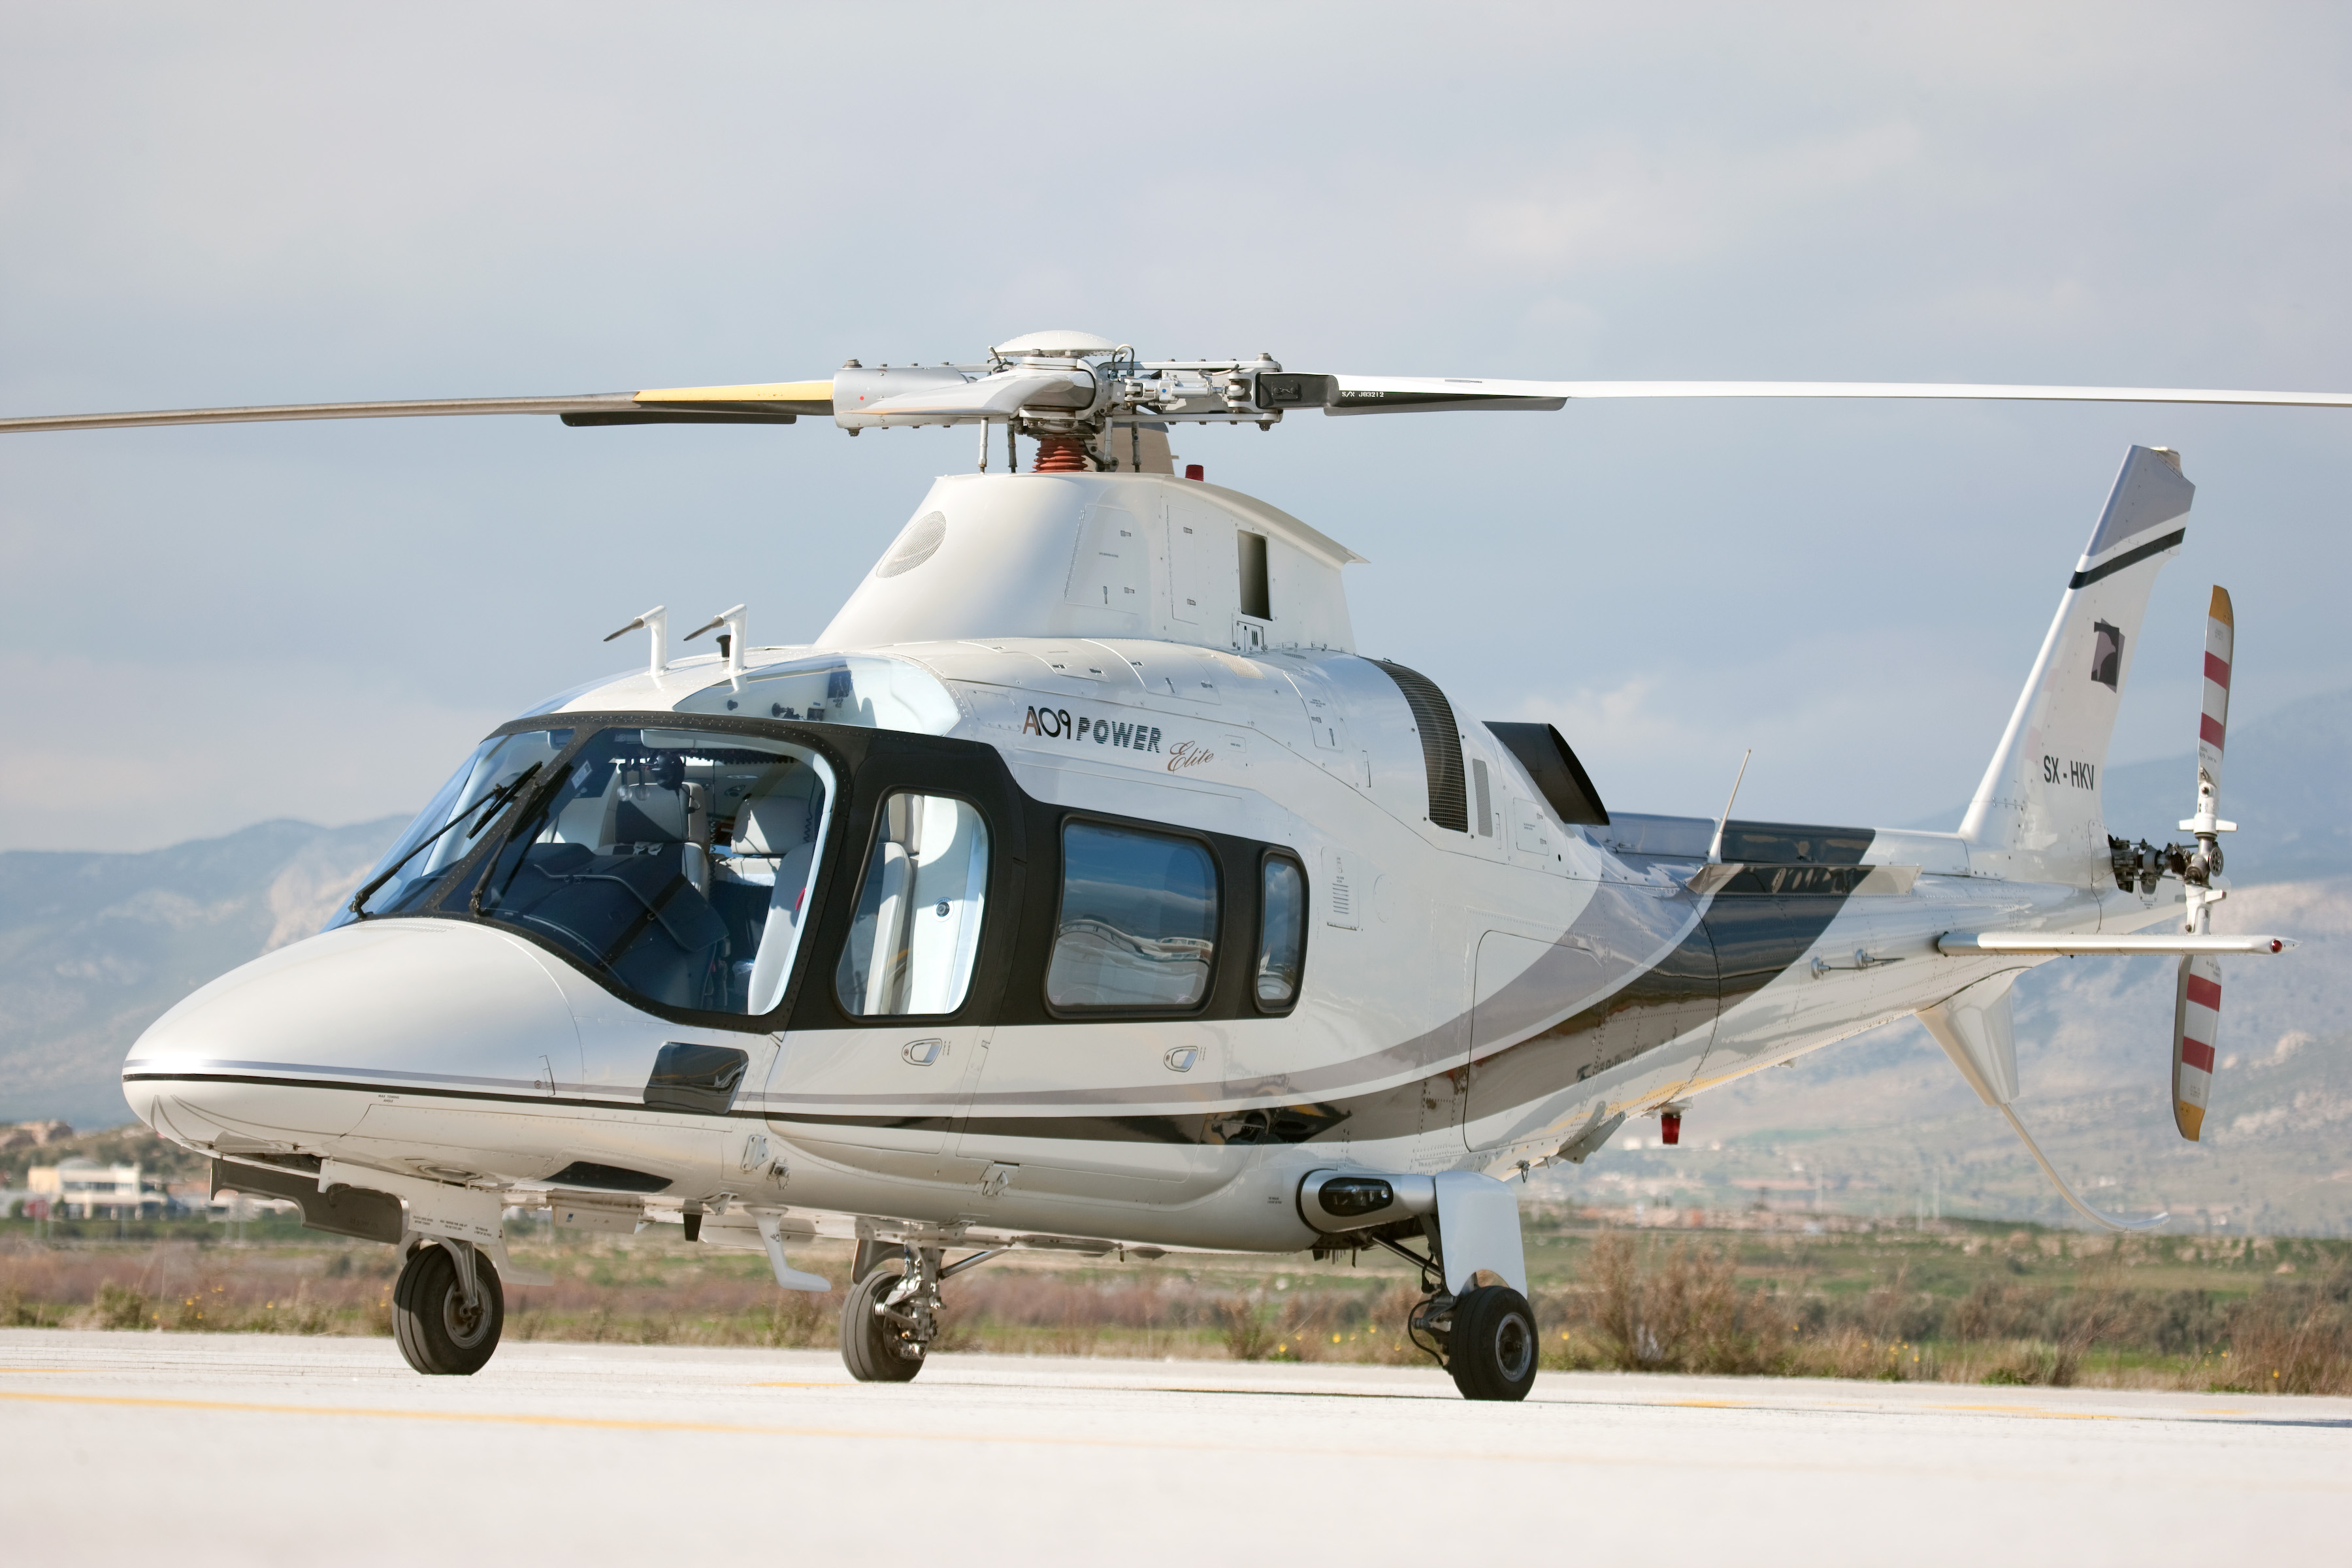 Elicottero A109 : Agusta a power elite vip helicopter